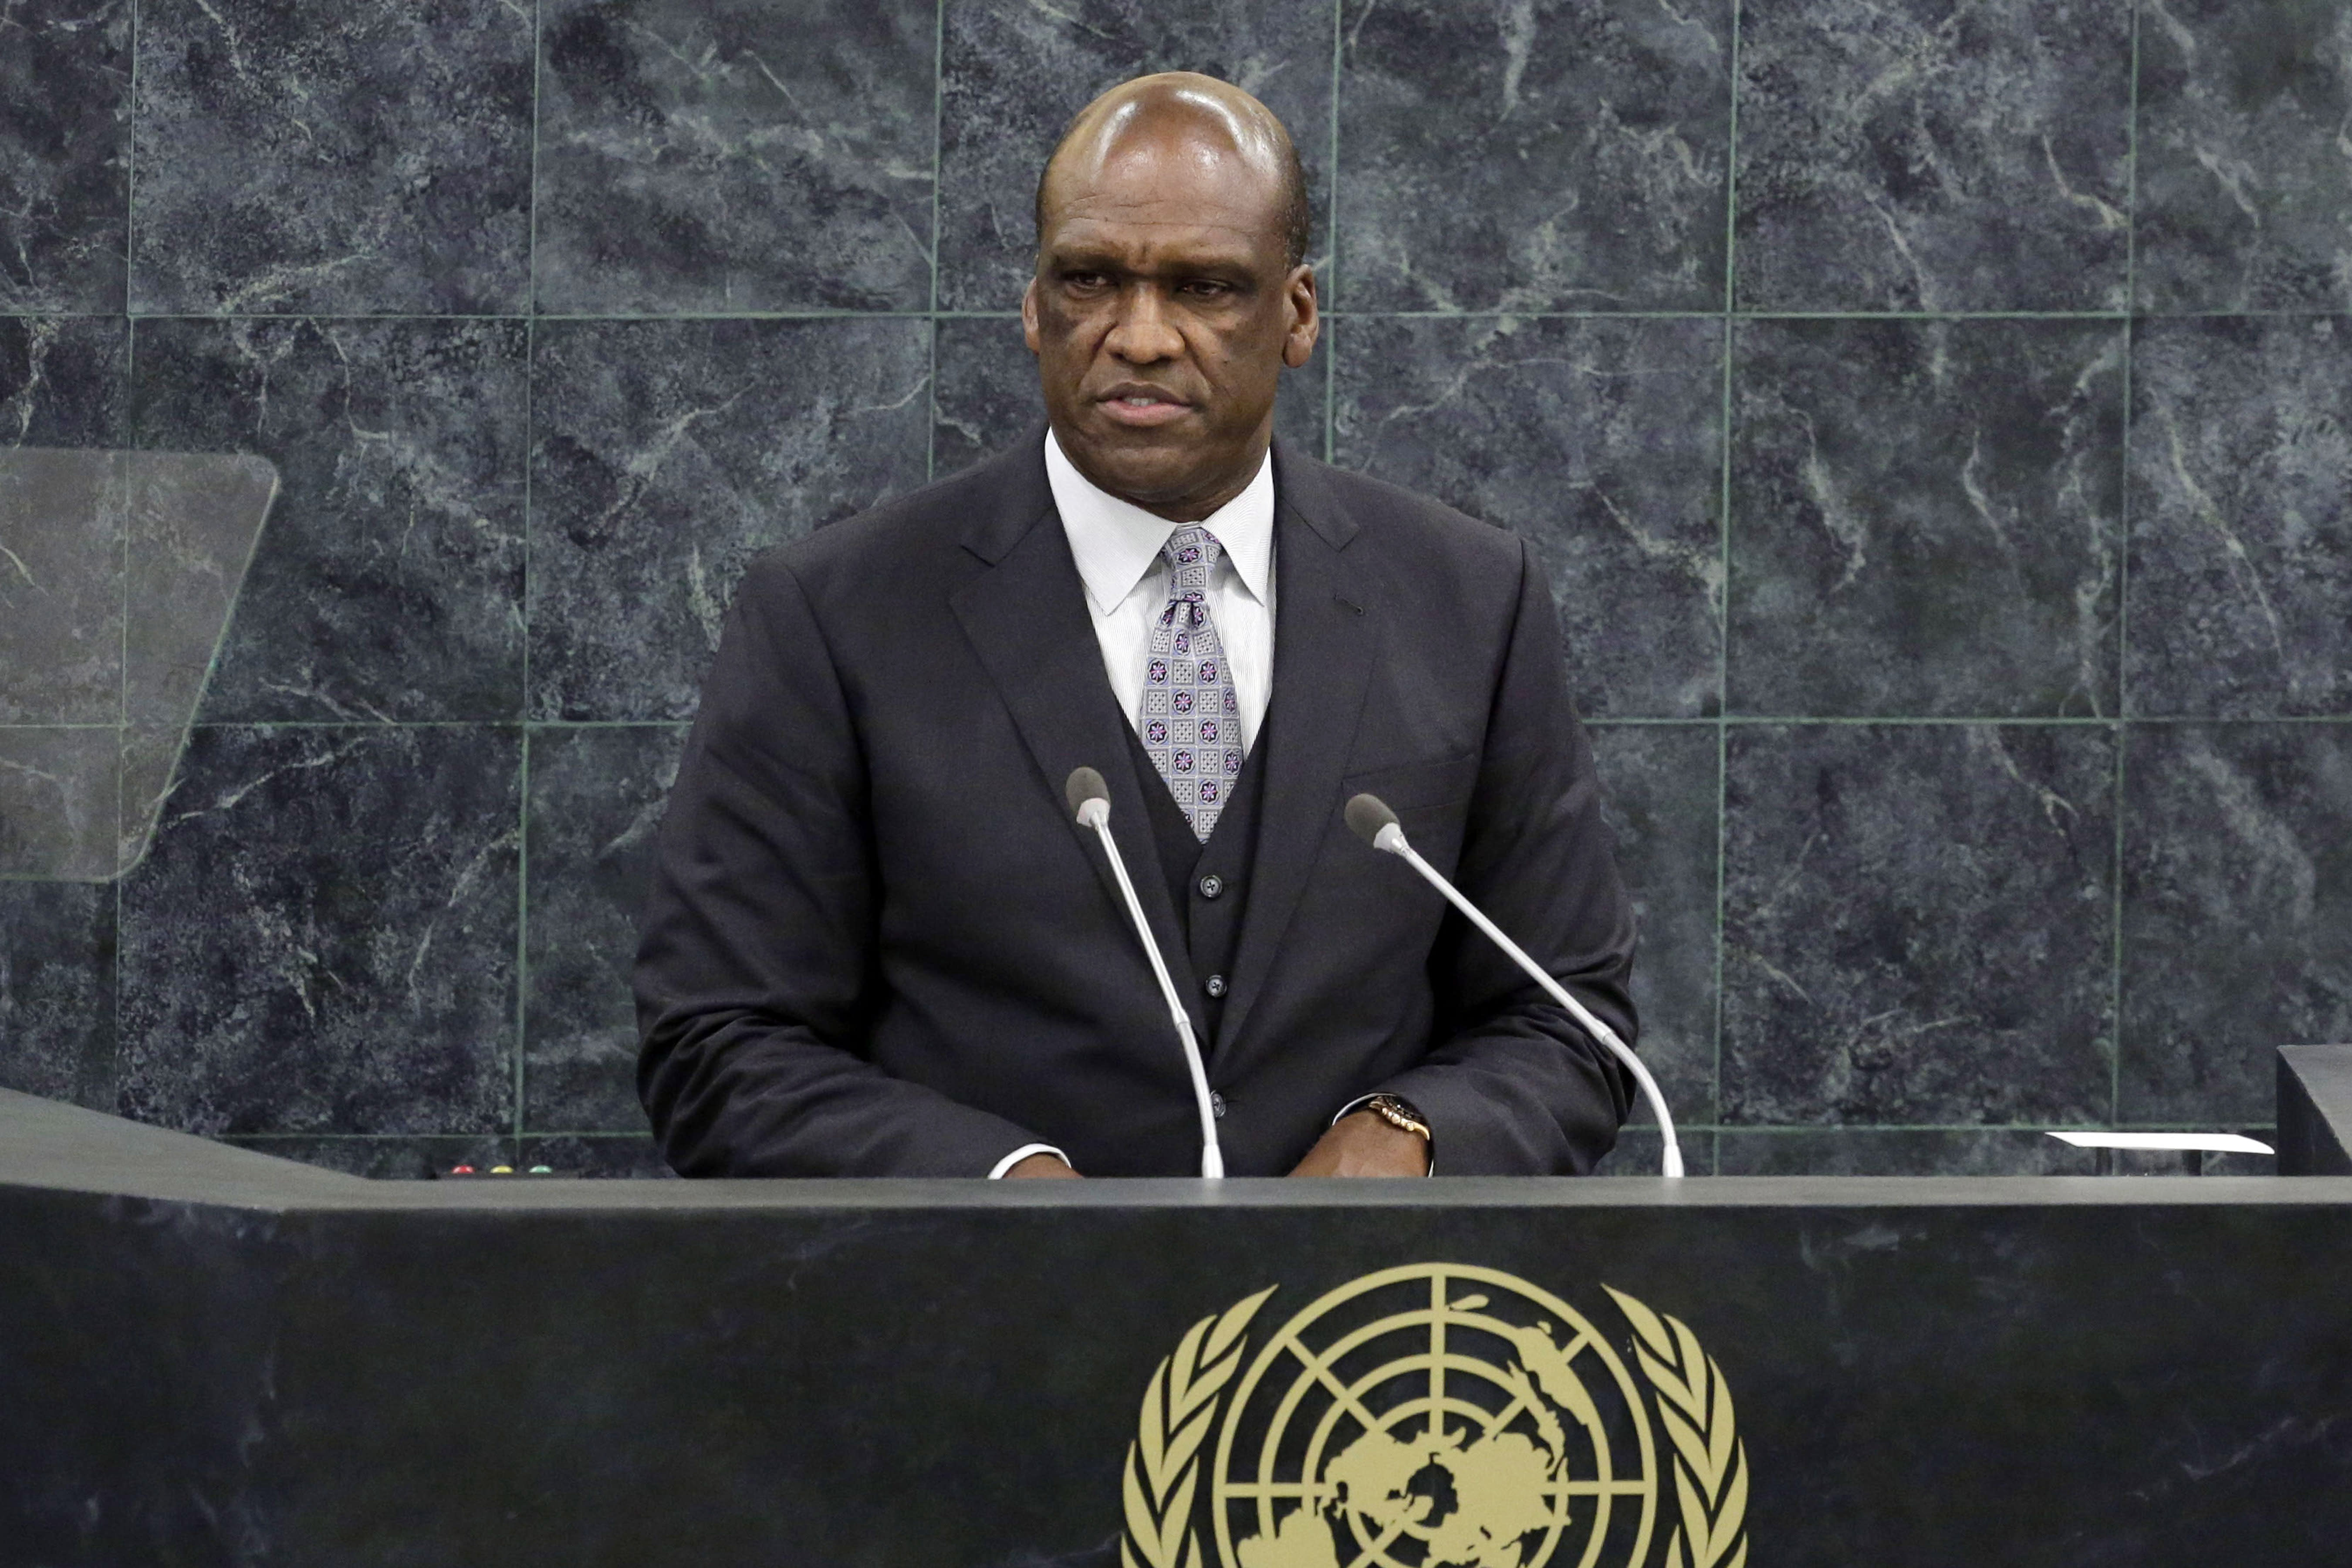 The Latest: Prosecutor: Charges show UN hit by corruption